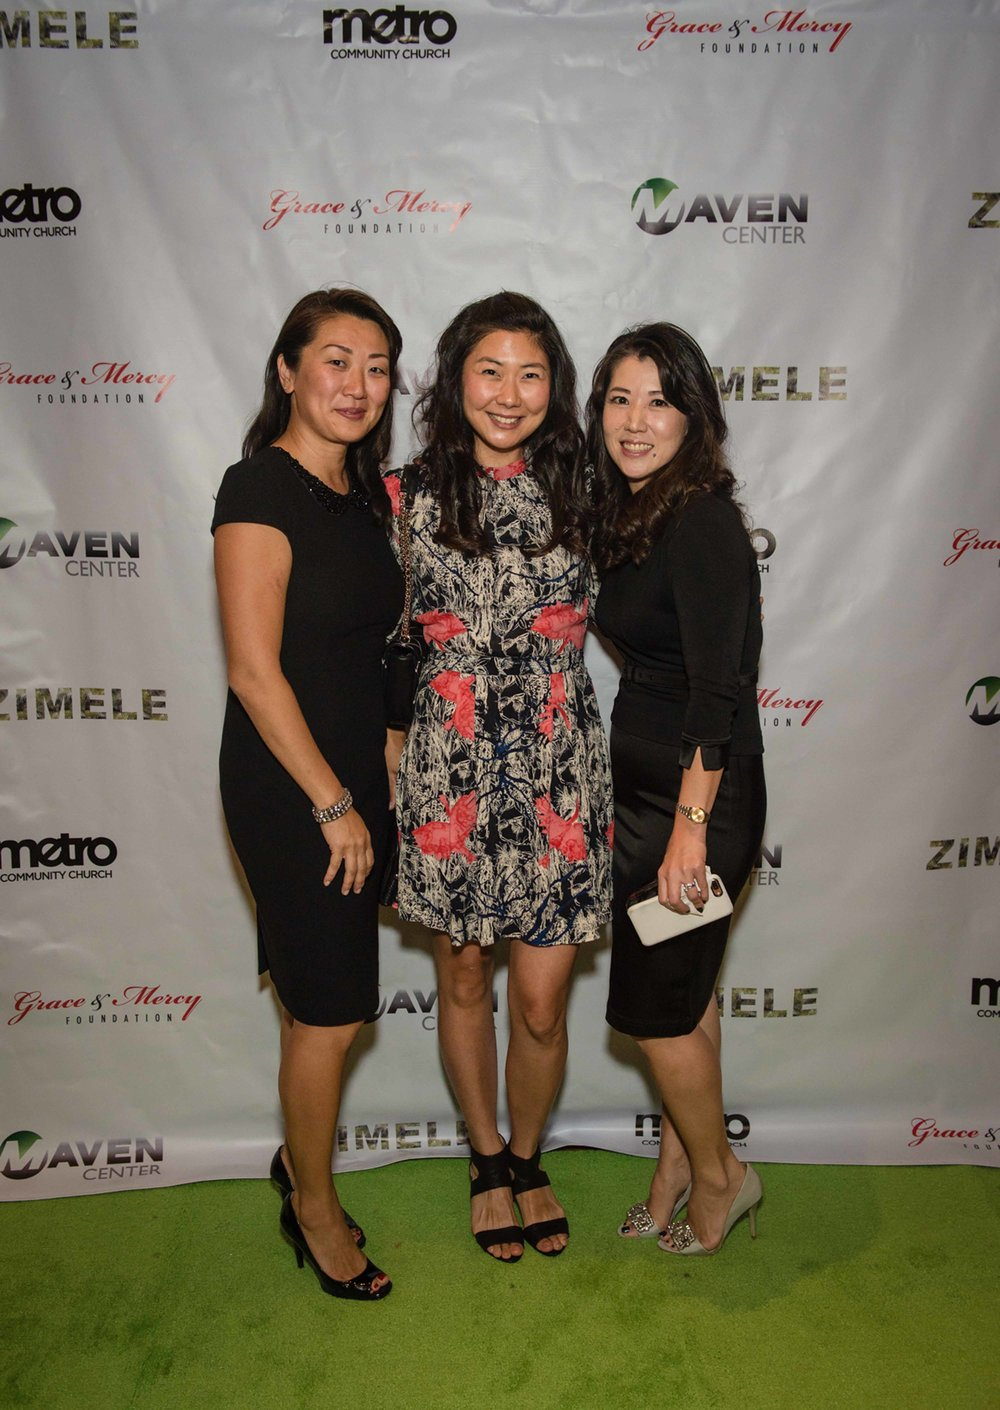 2017-10-21 Zimele USA 6th Annual Gala - Maritime Parc - Jersey City NJ_0040.jpg